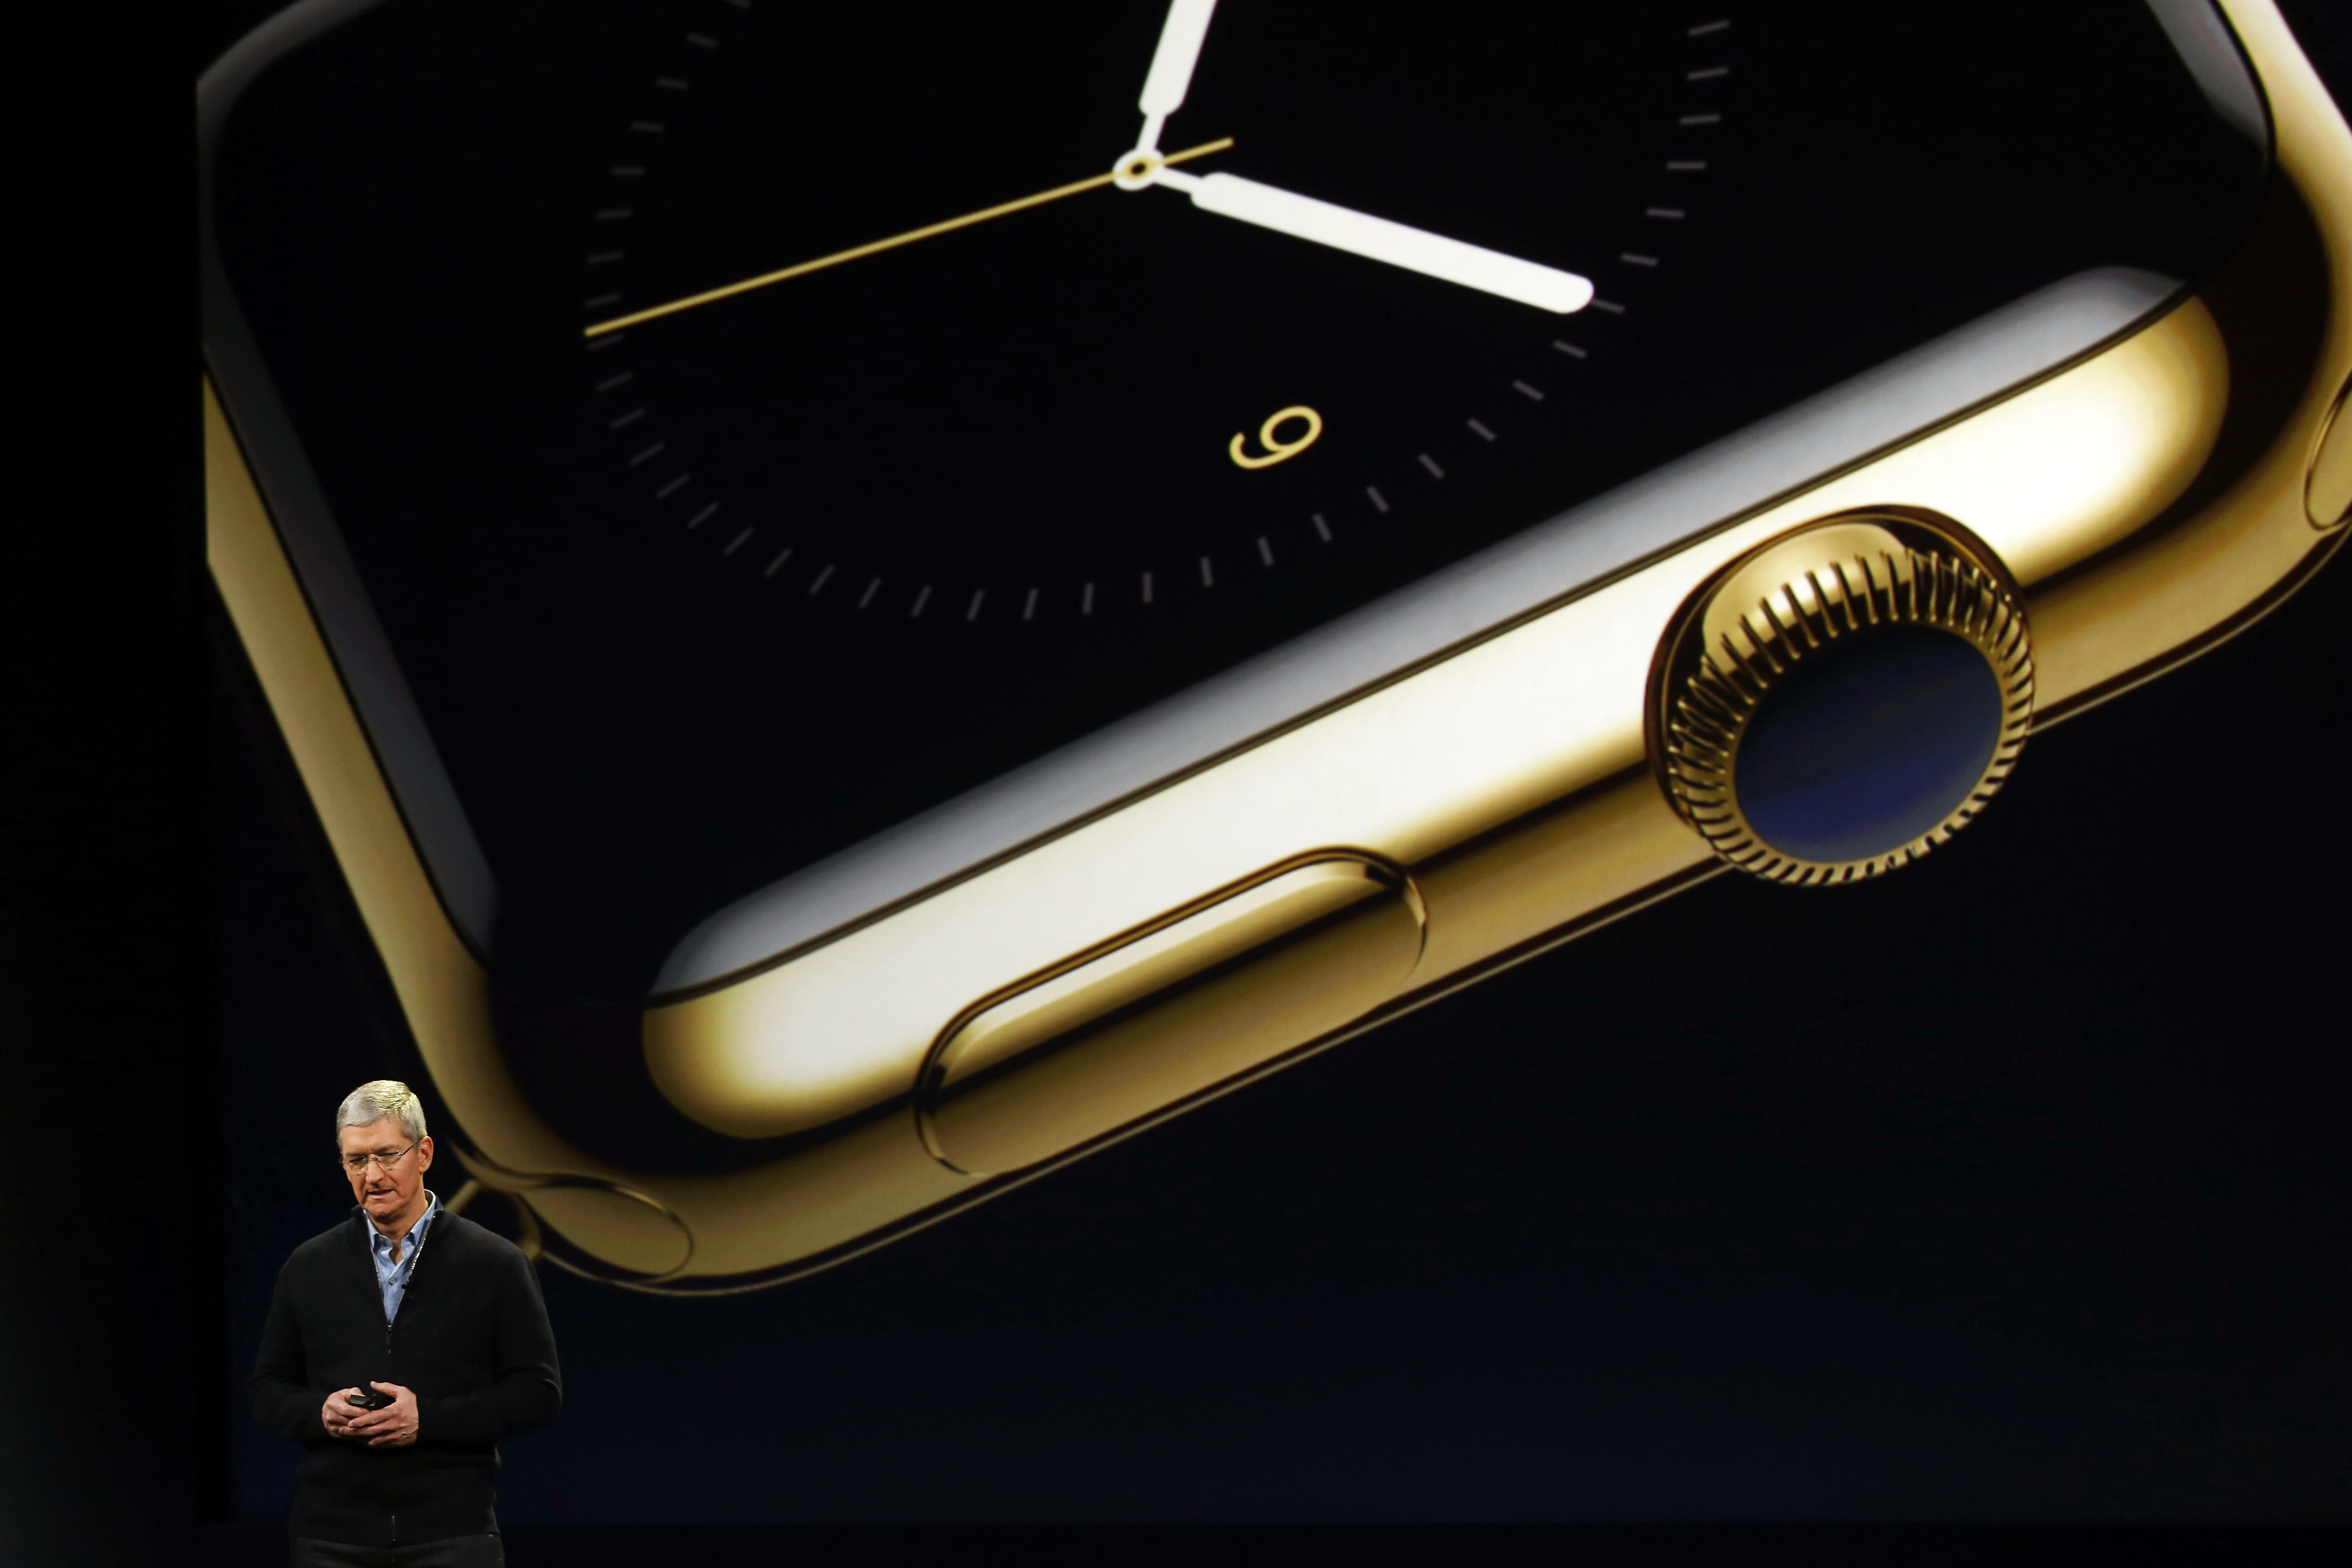 The best $10K investment: Apple Watch